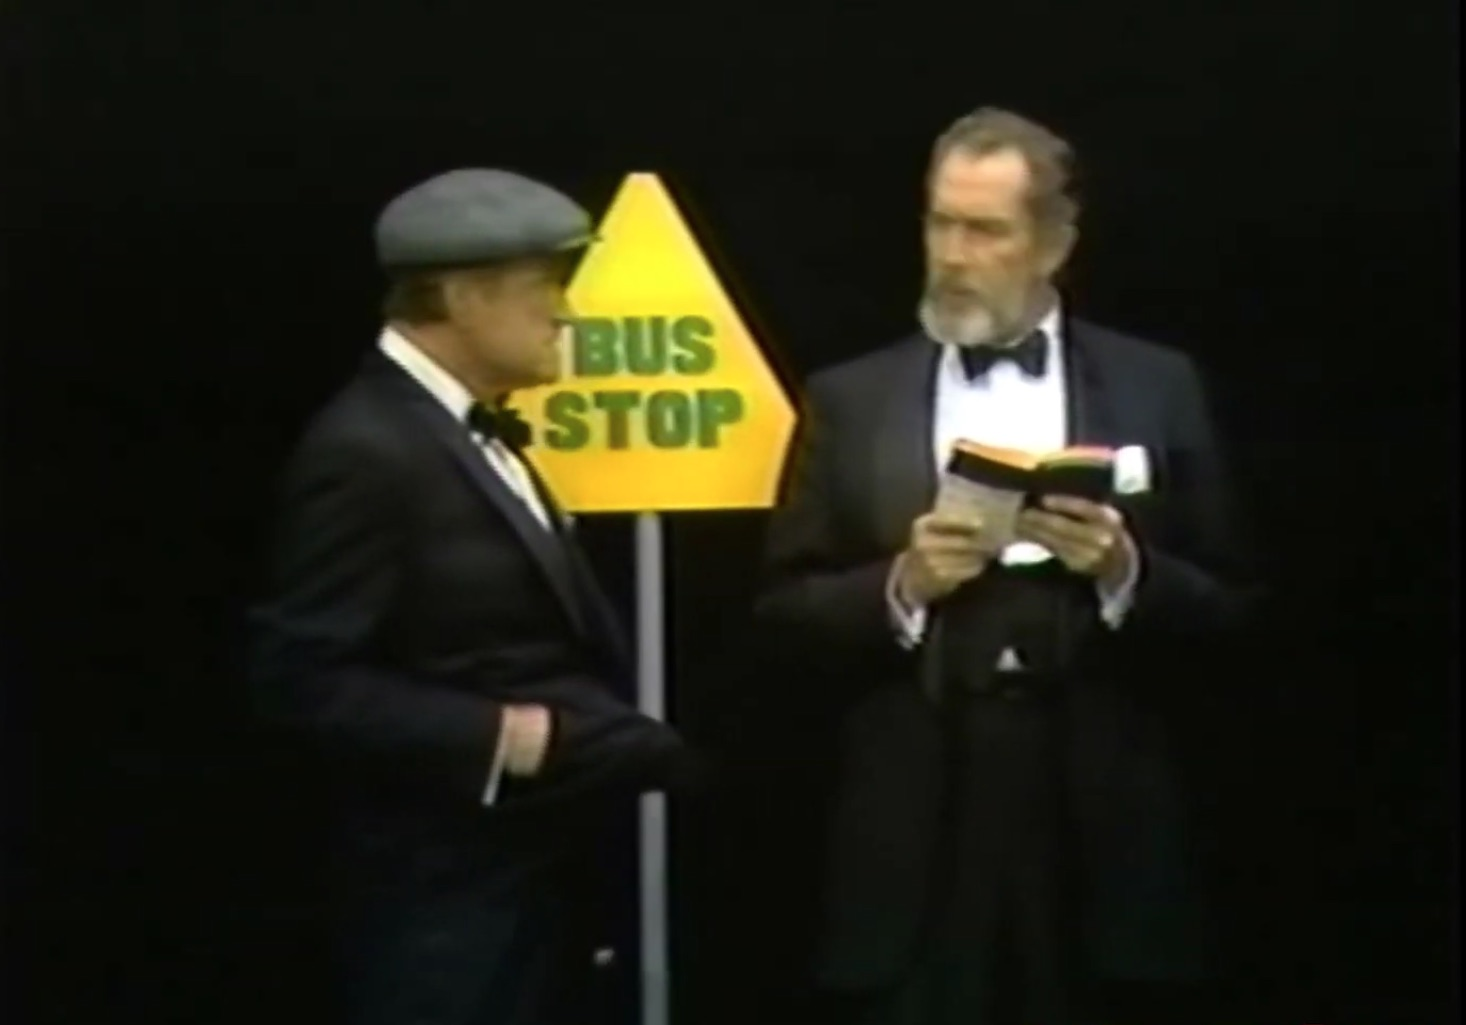 The Hold Up - one minute sketch, where Red Skelton holds up Vincent Price - but why?